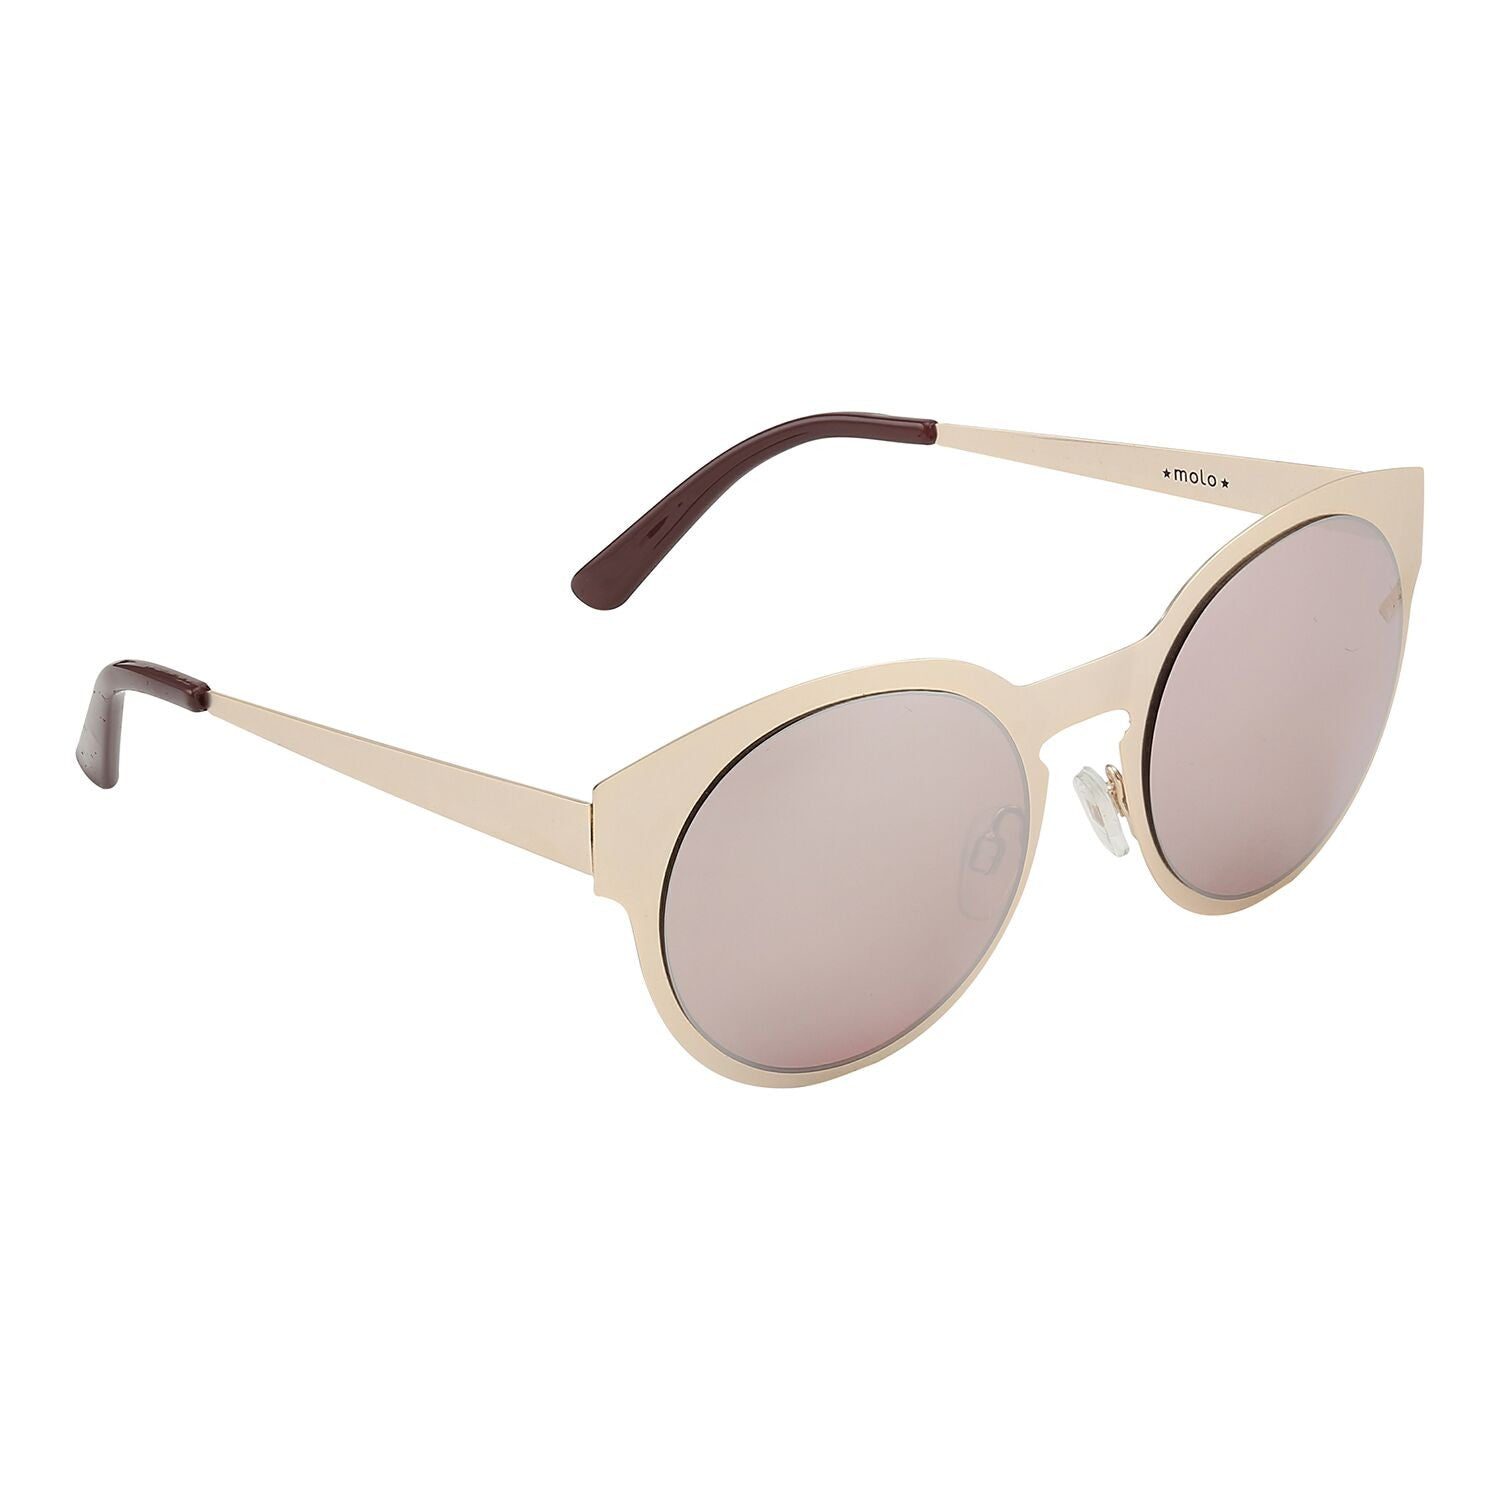 Molo Gold Sunglasses - Ladida